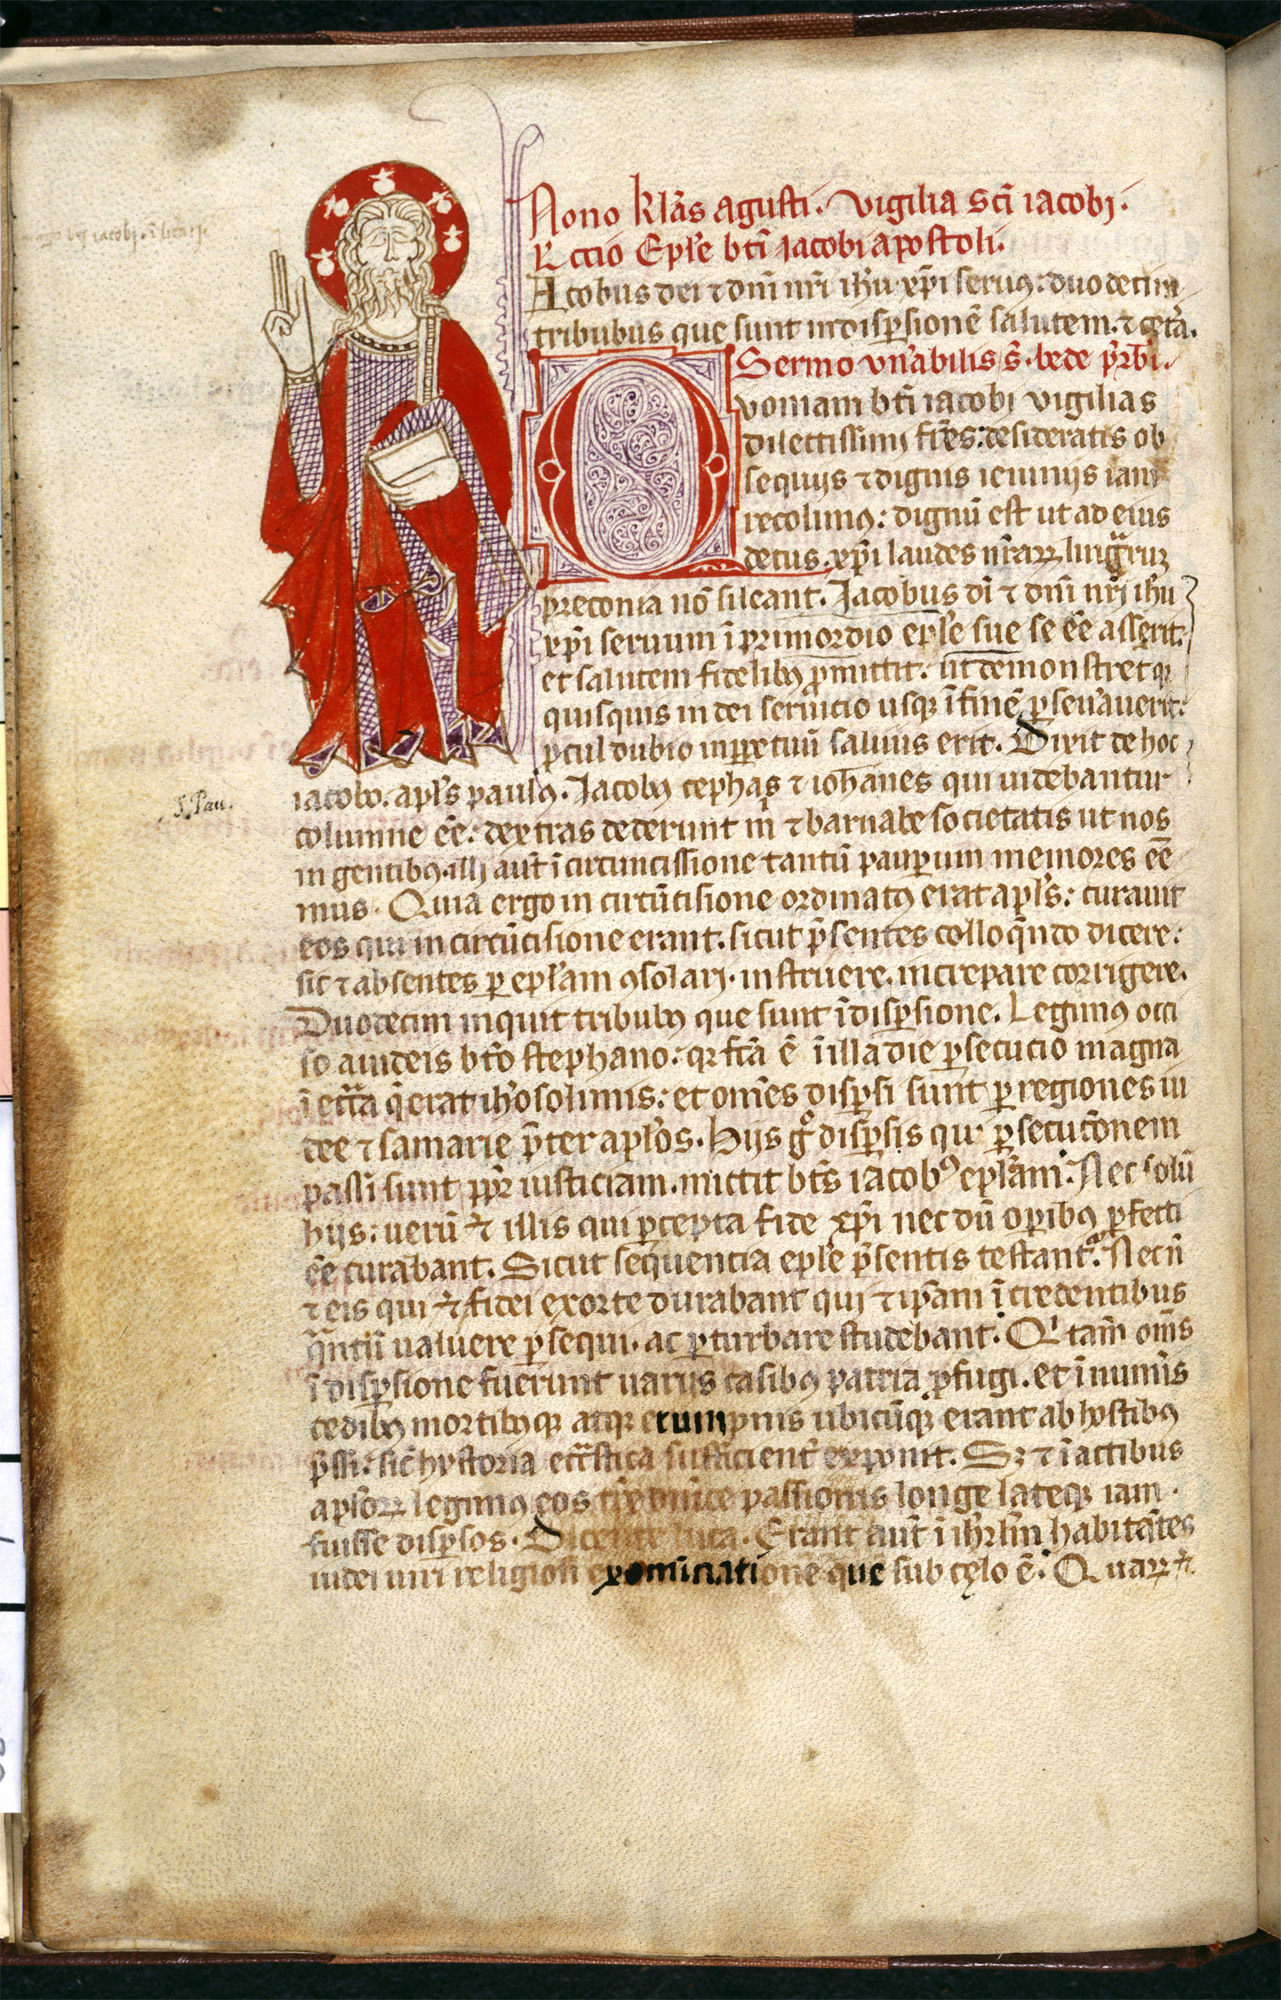 Pilgrim's Guide to Compostela, Galicia, Spain, first half of the 14th century. Liturgy of St James